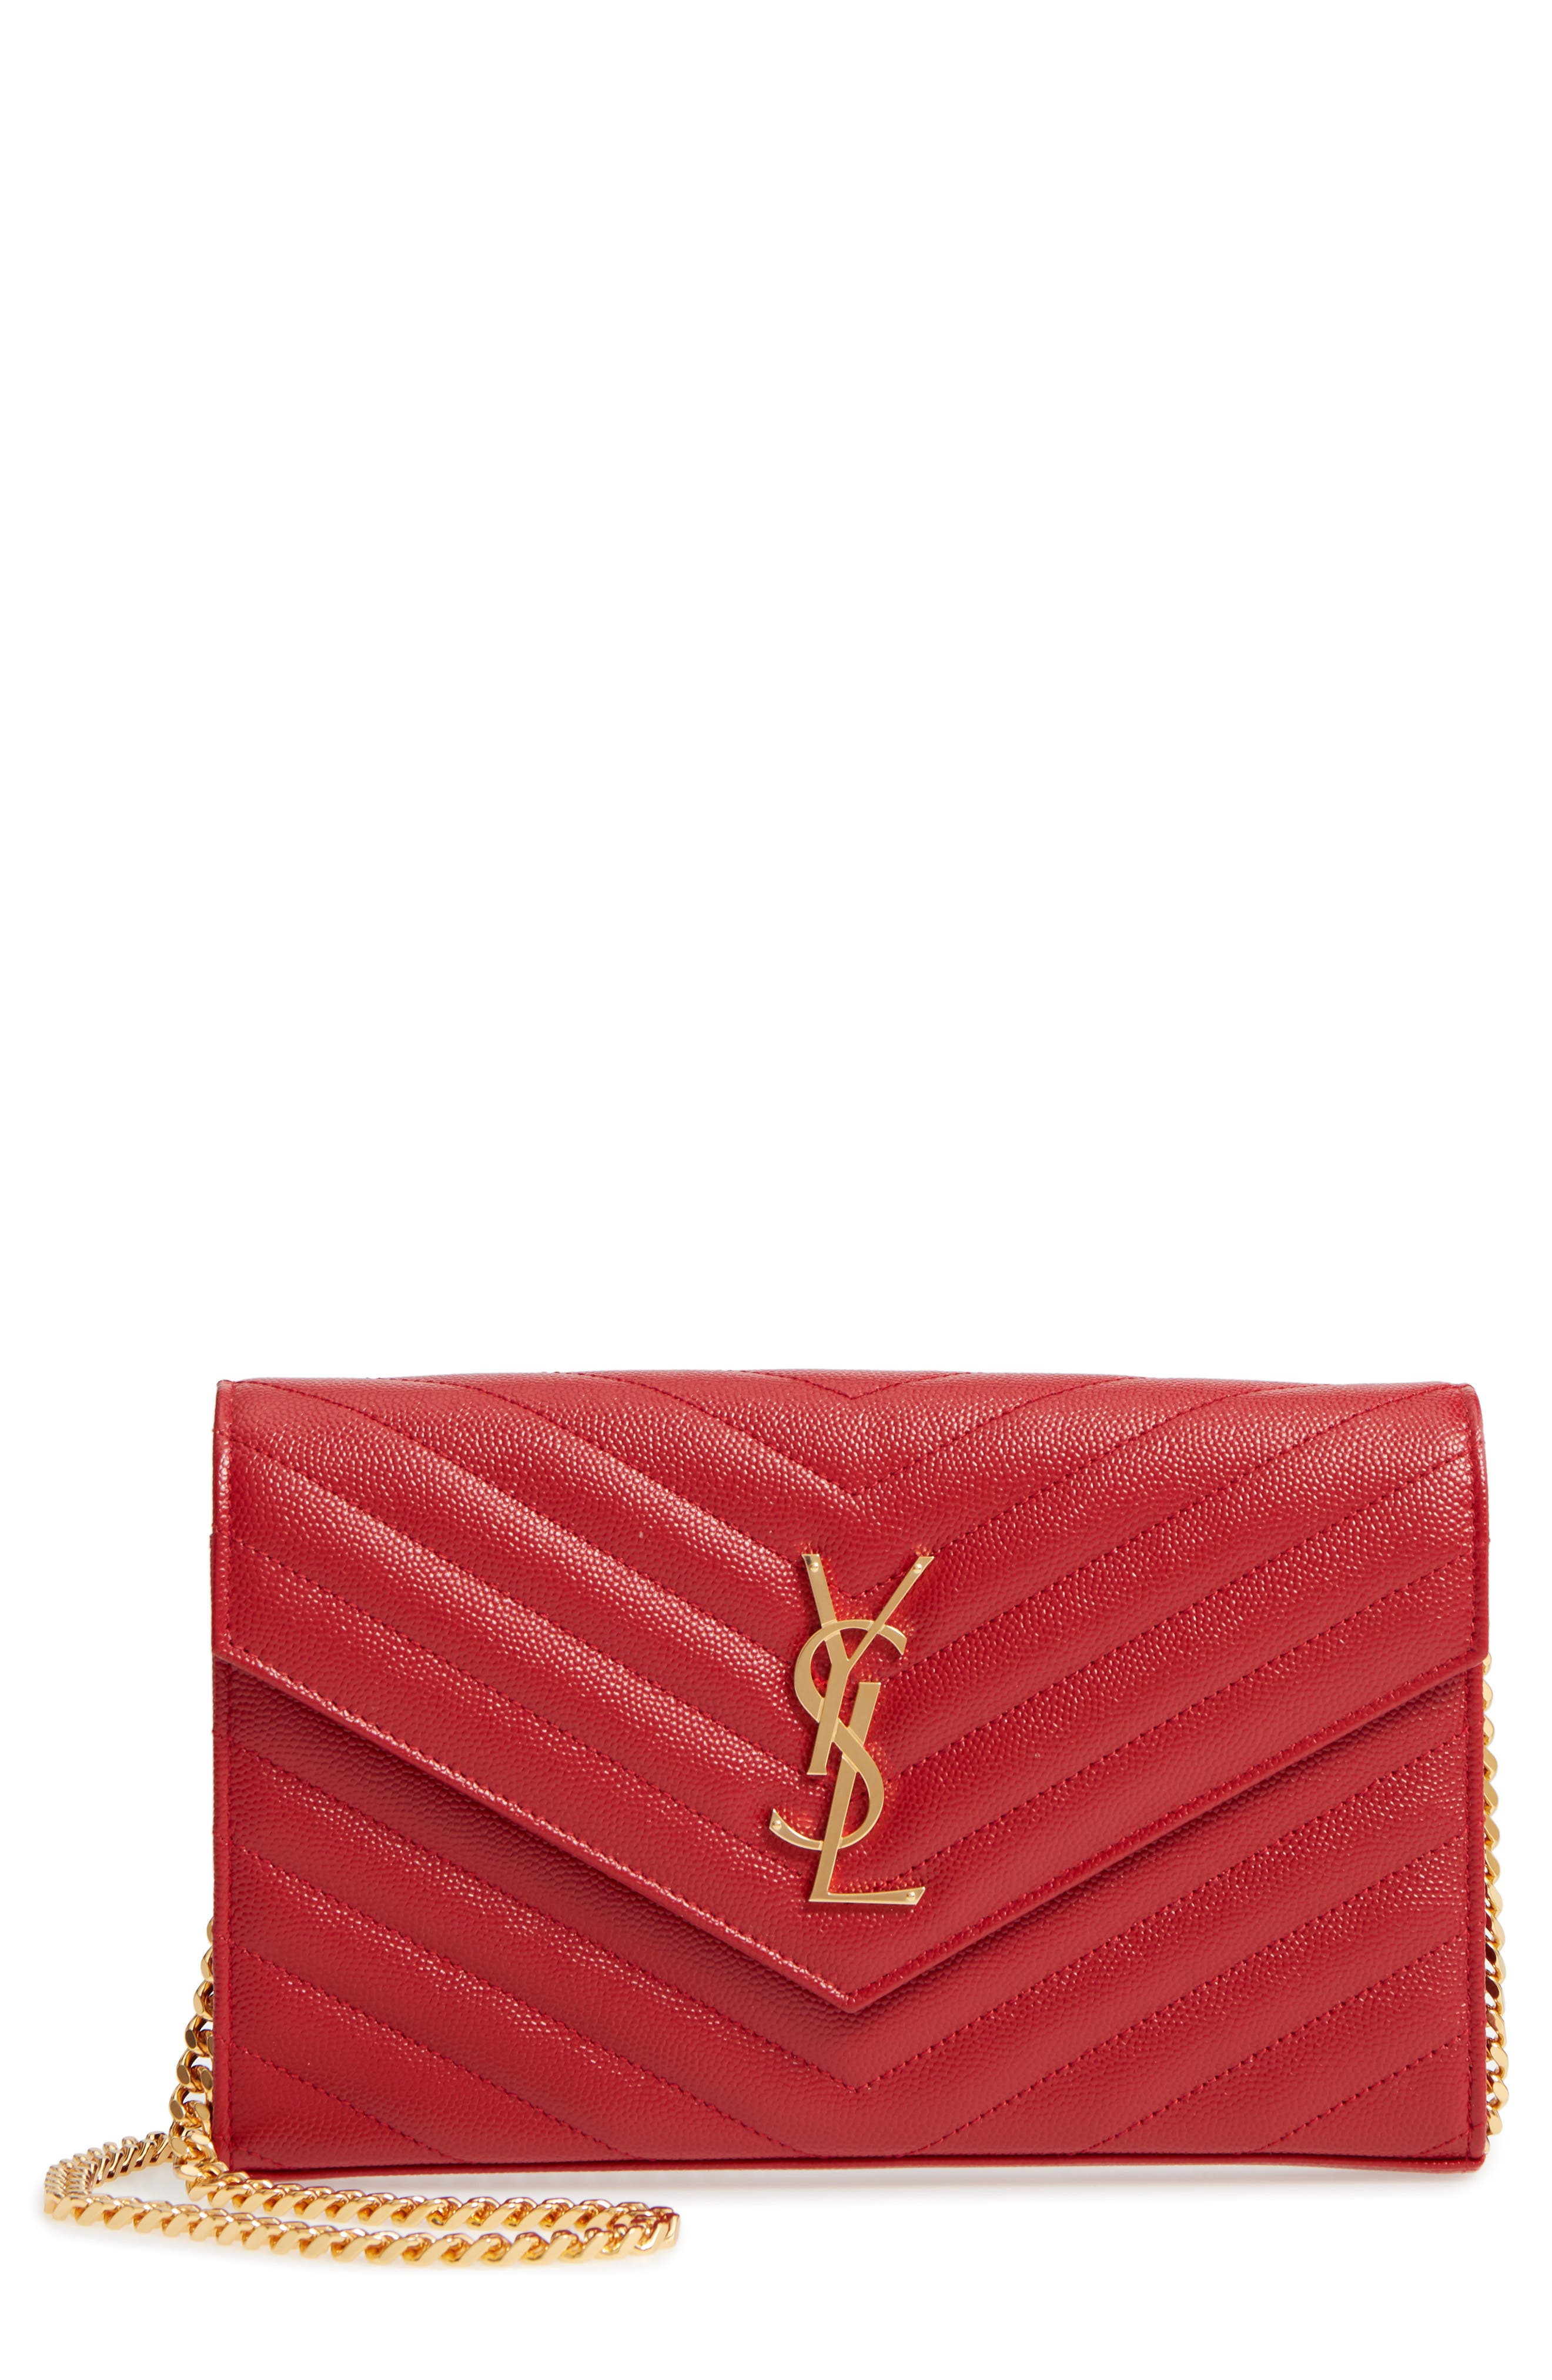 Womens Monogram Leather Chain Wallet Saint Laurent rV60h8xkD